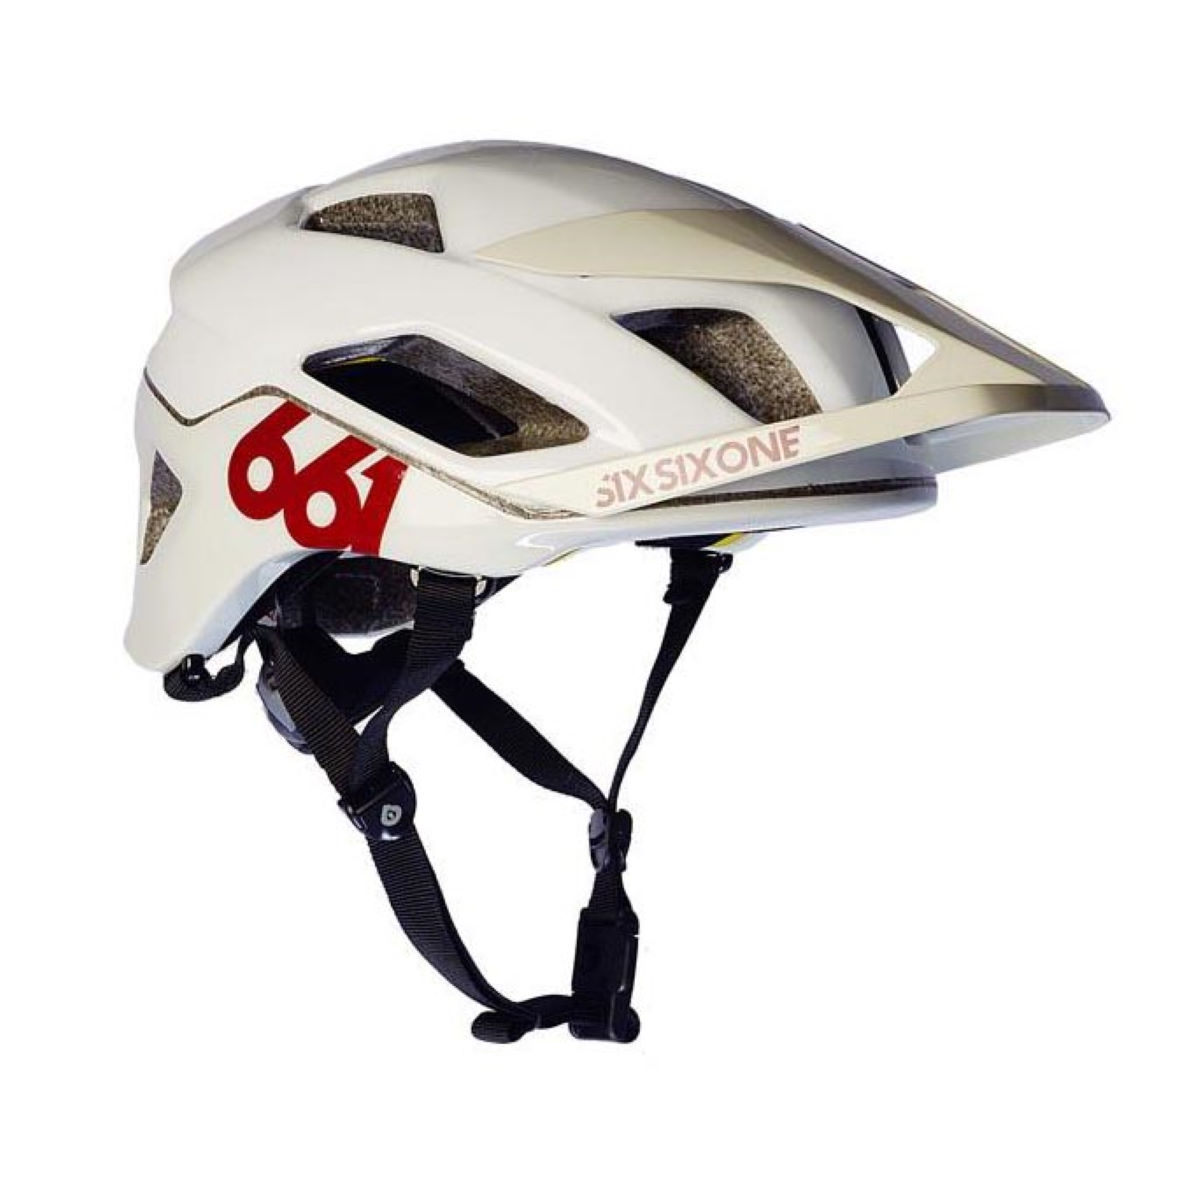 Casque SixSixOne Evo AM MIPS - XL/2XL Blanc/Blanc Casques